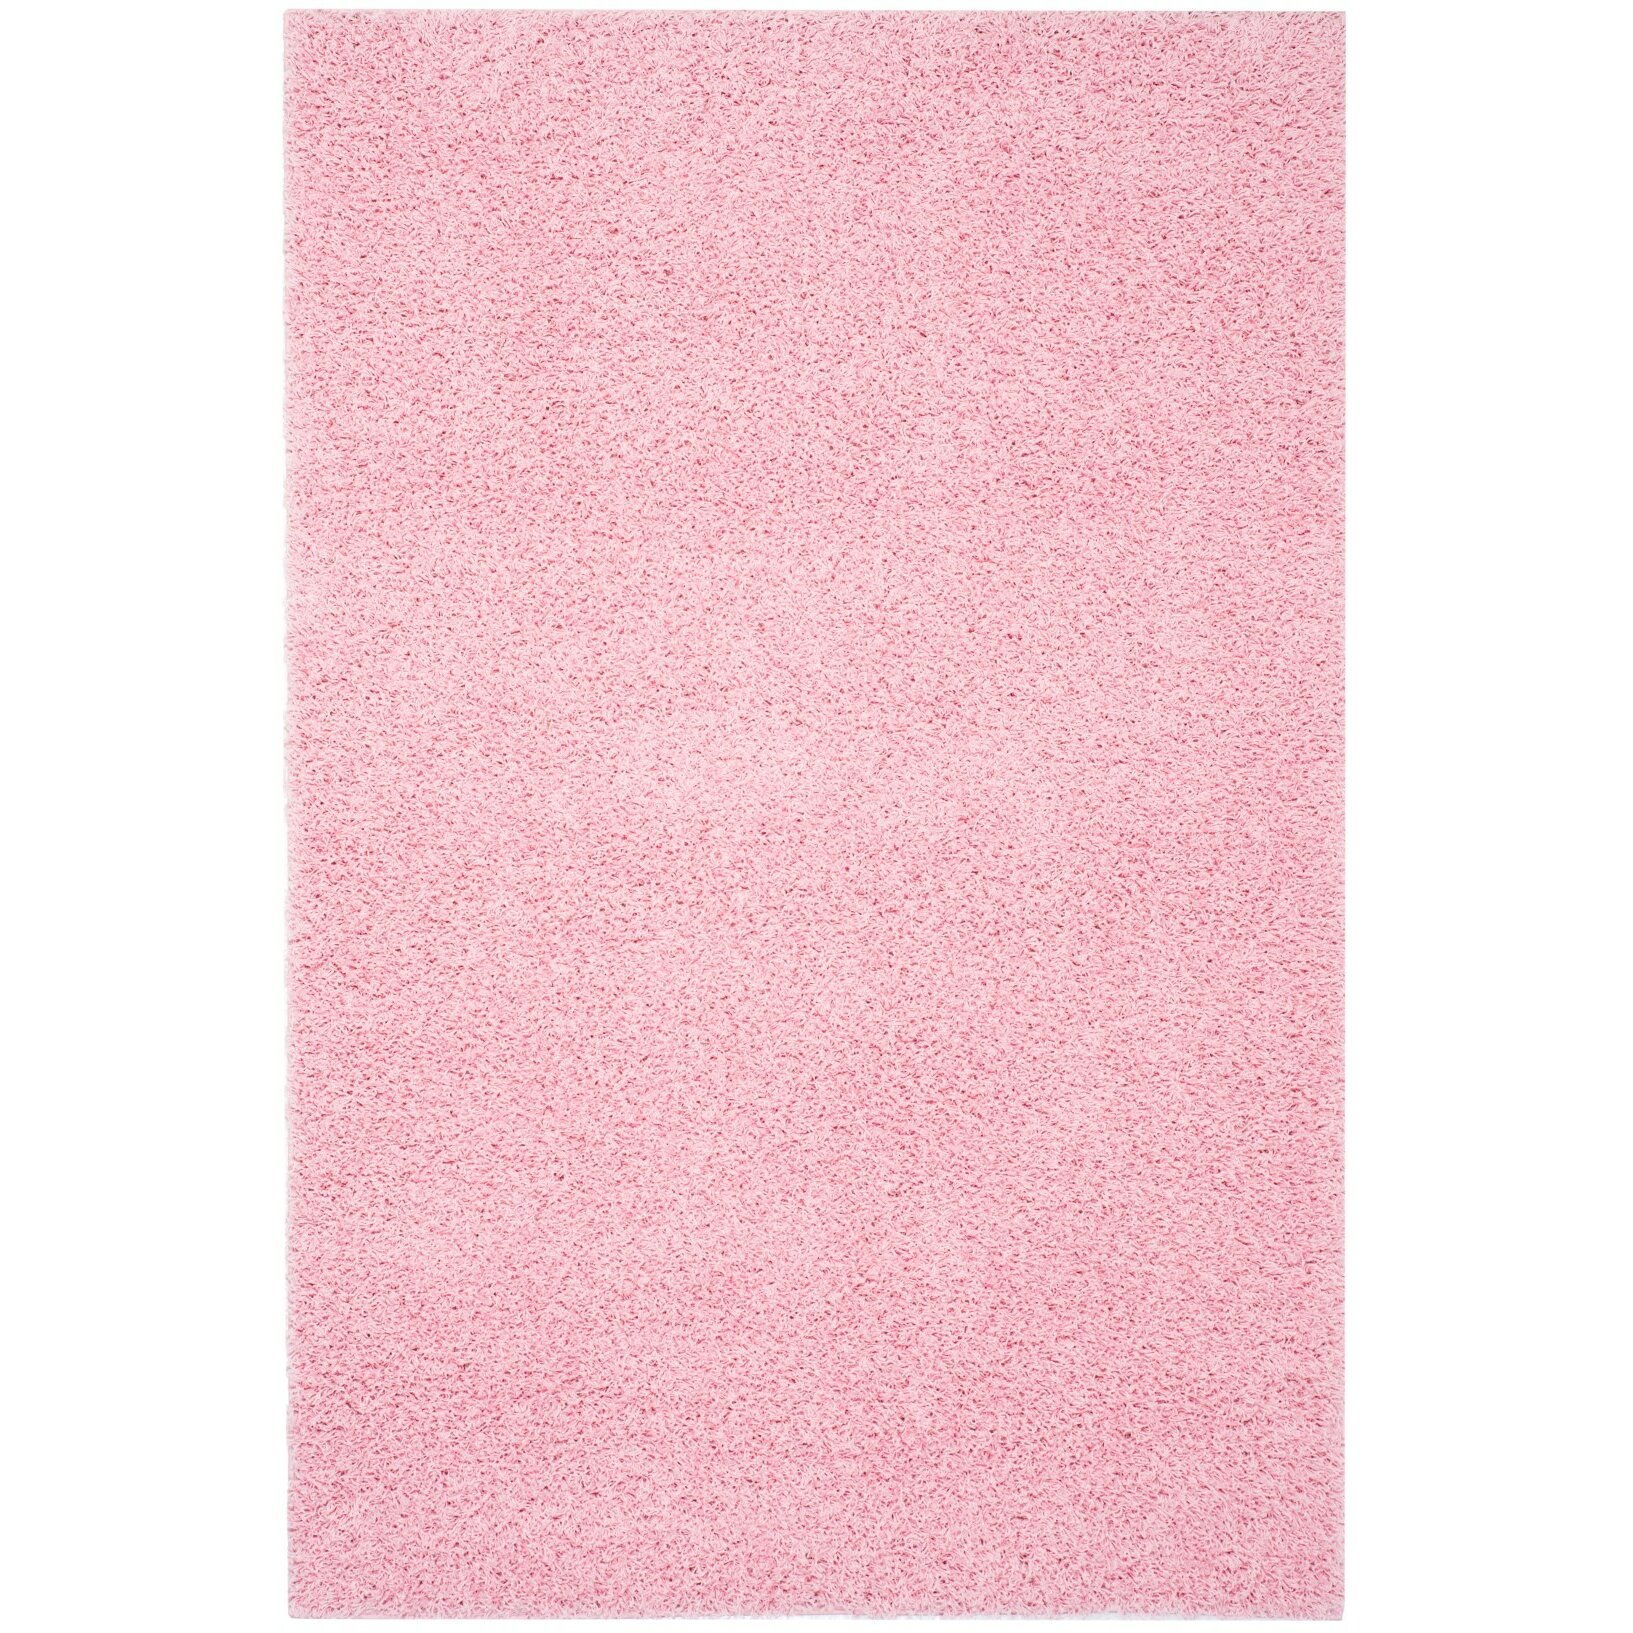 Mercer41 Caine Pink Area Rug Reviews Wayfair